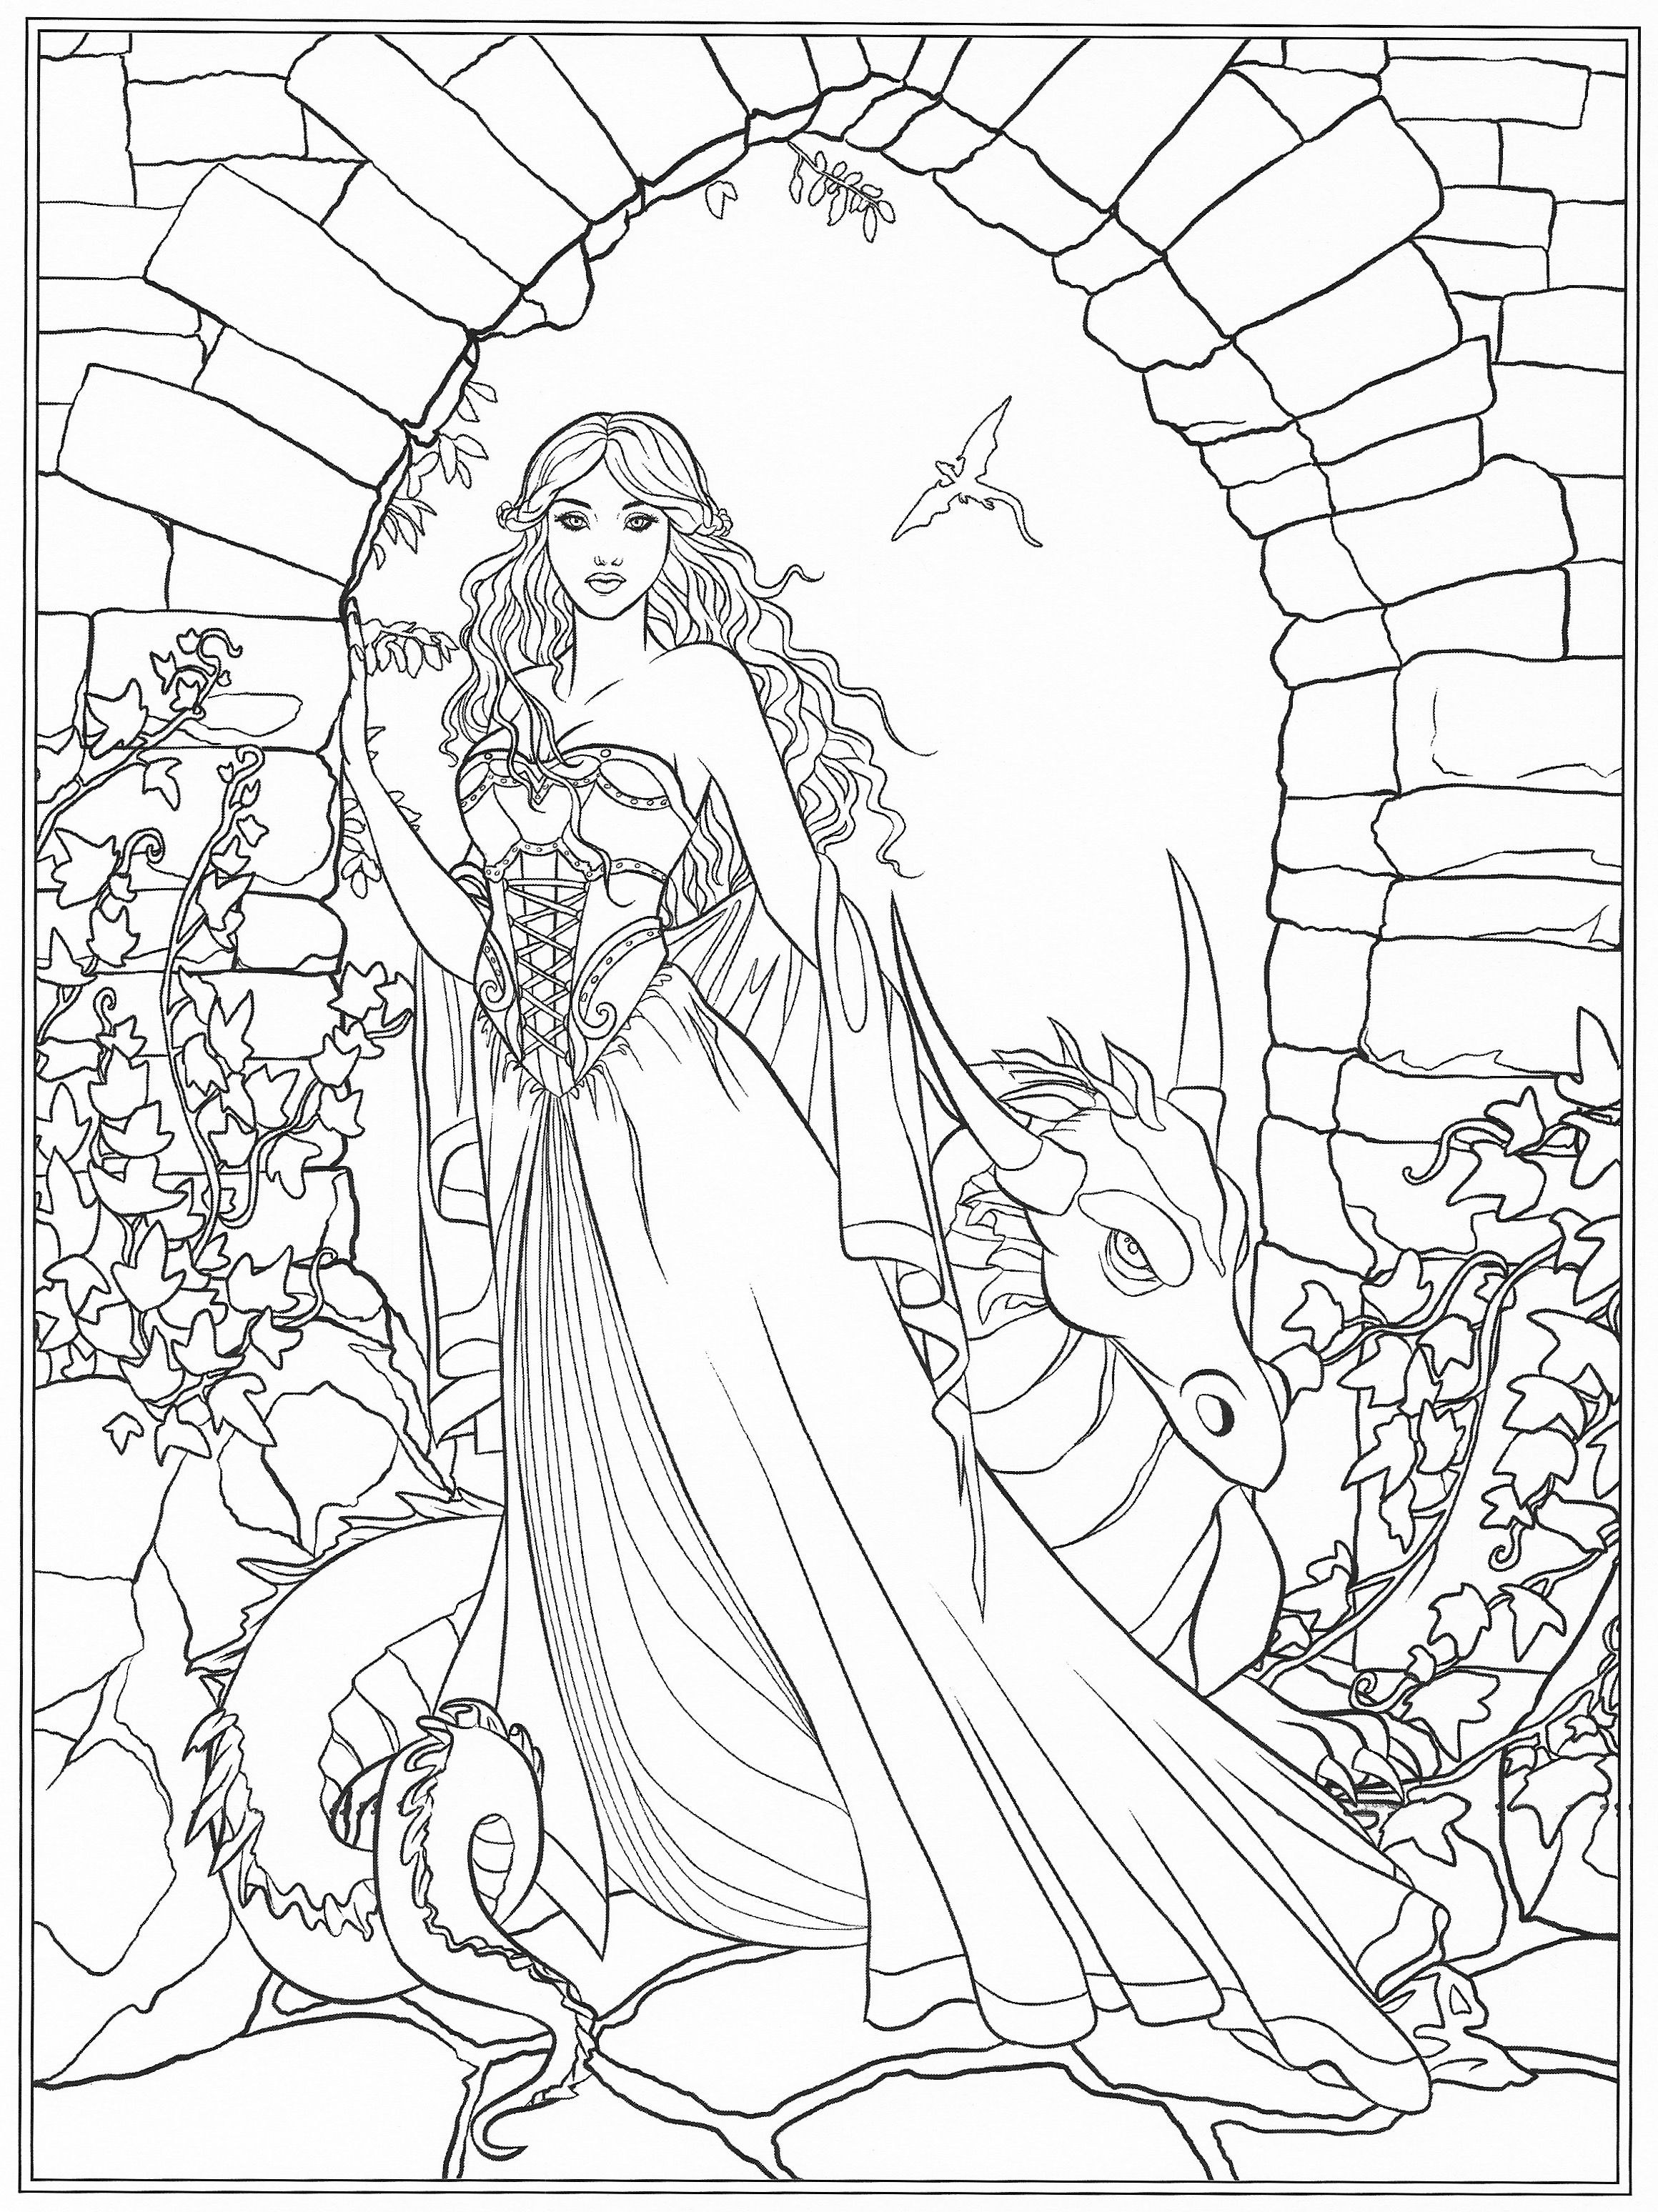 coloring pages fantasy – javisebalier.co